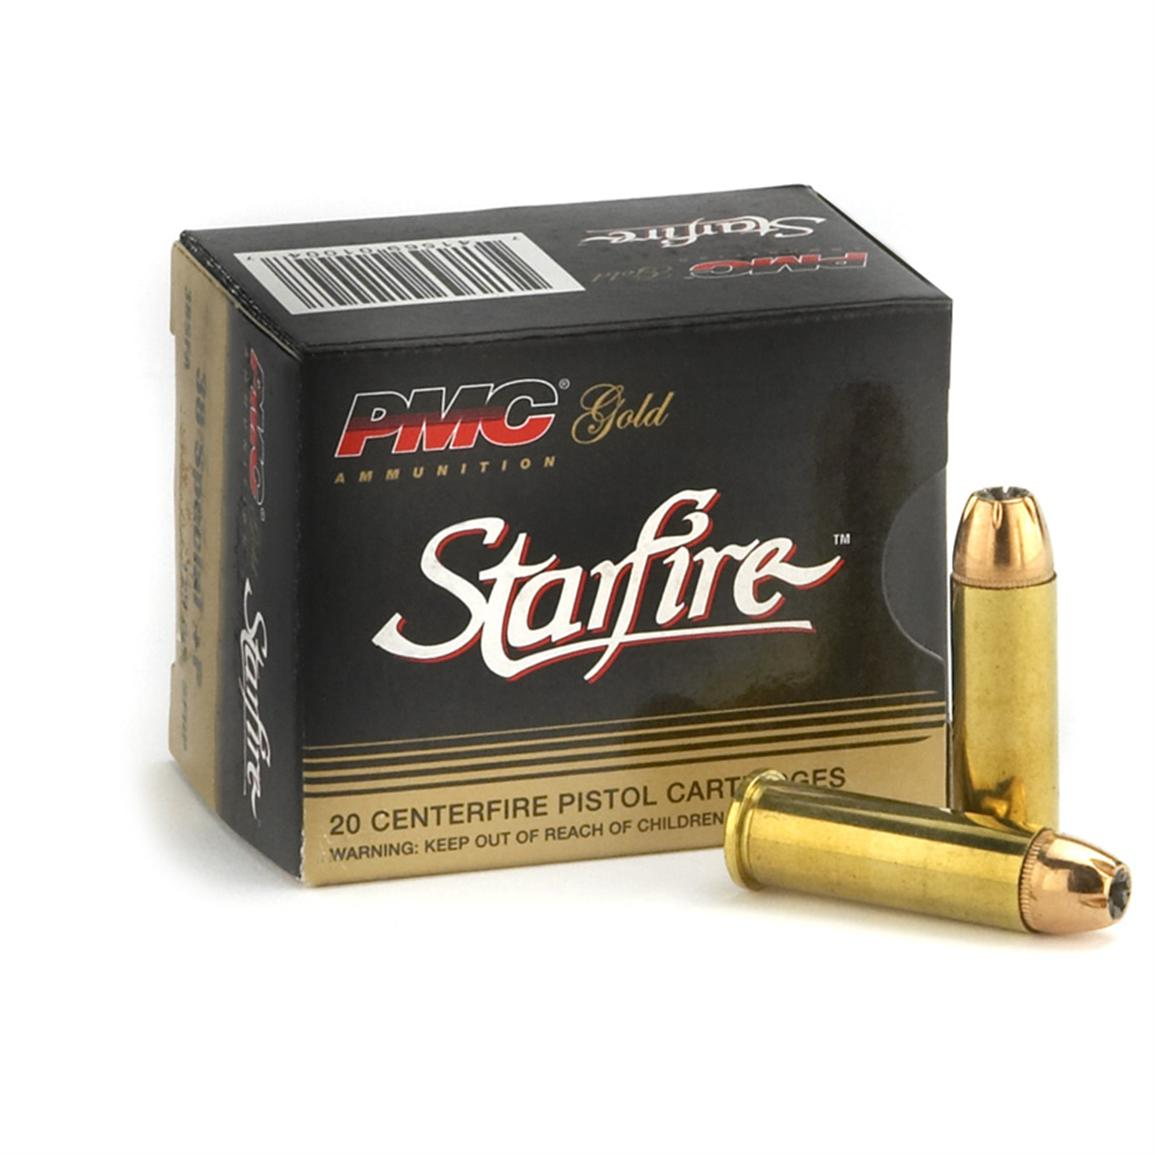 PMC® Gold Starfire Hollow Point Ammo